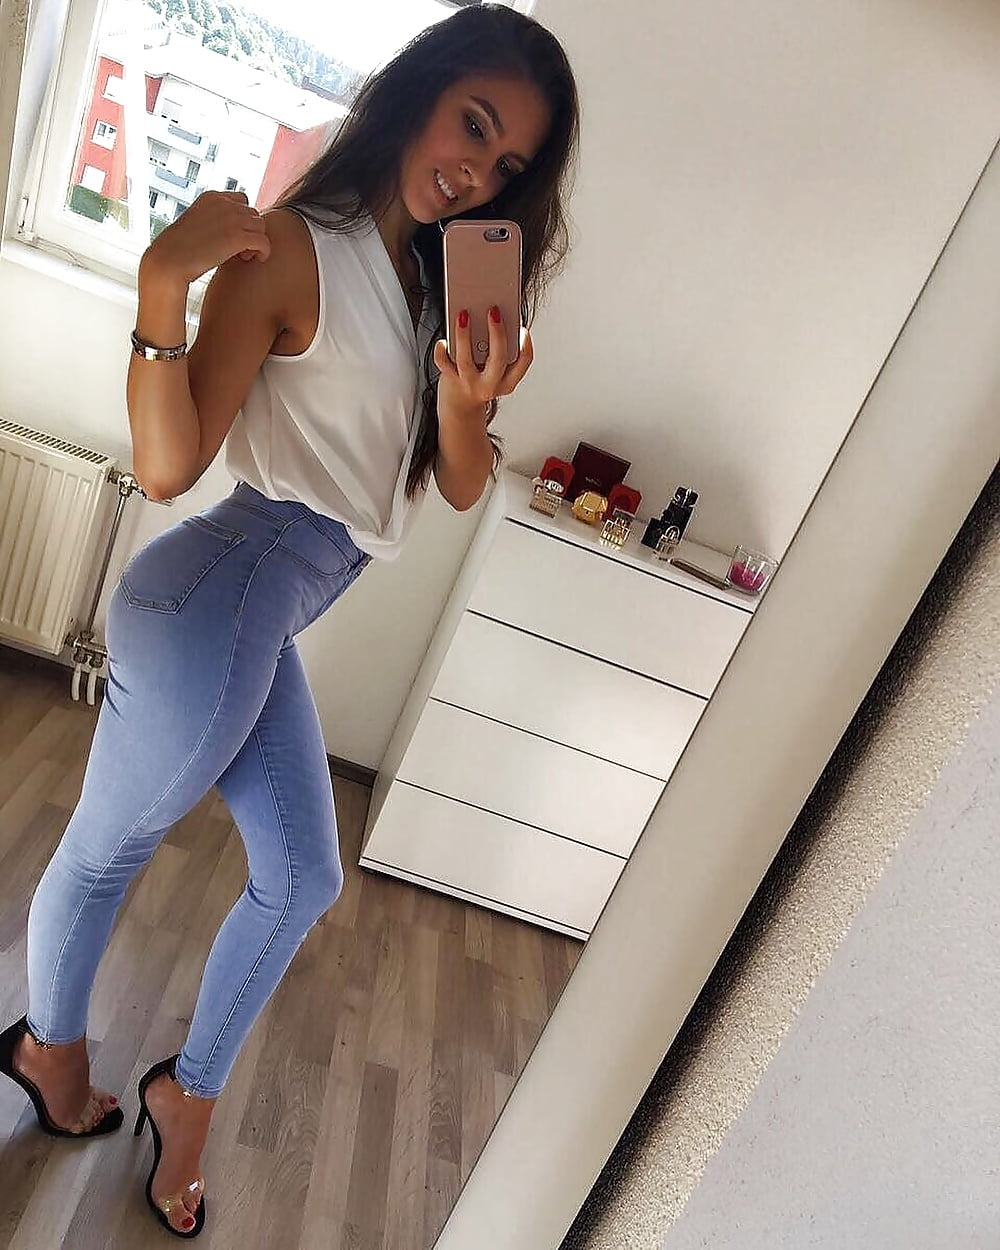 Emoteen Bei Camshow